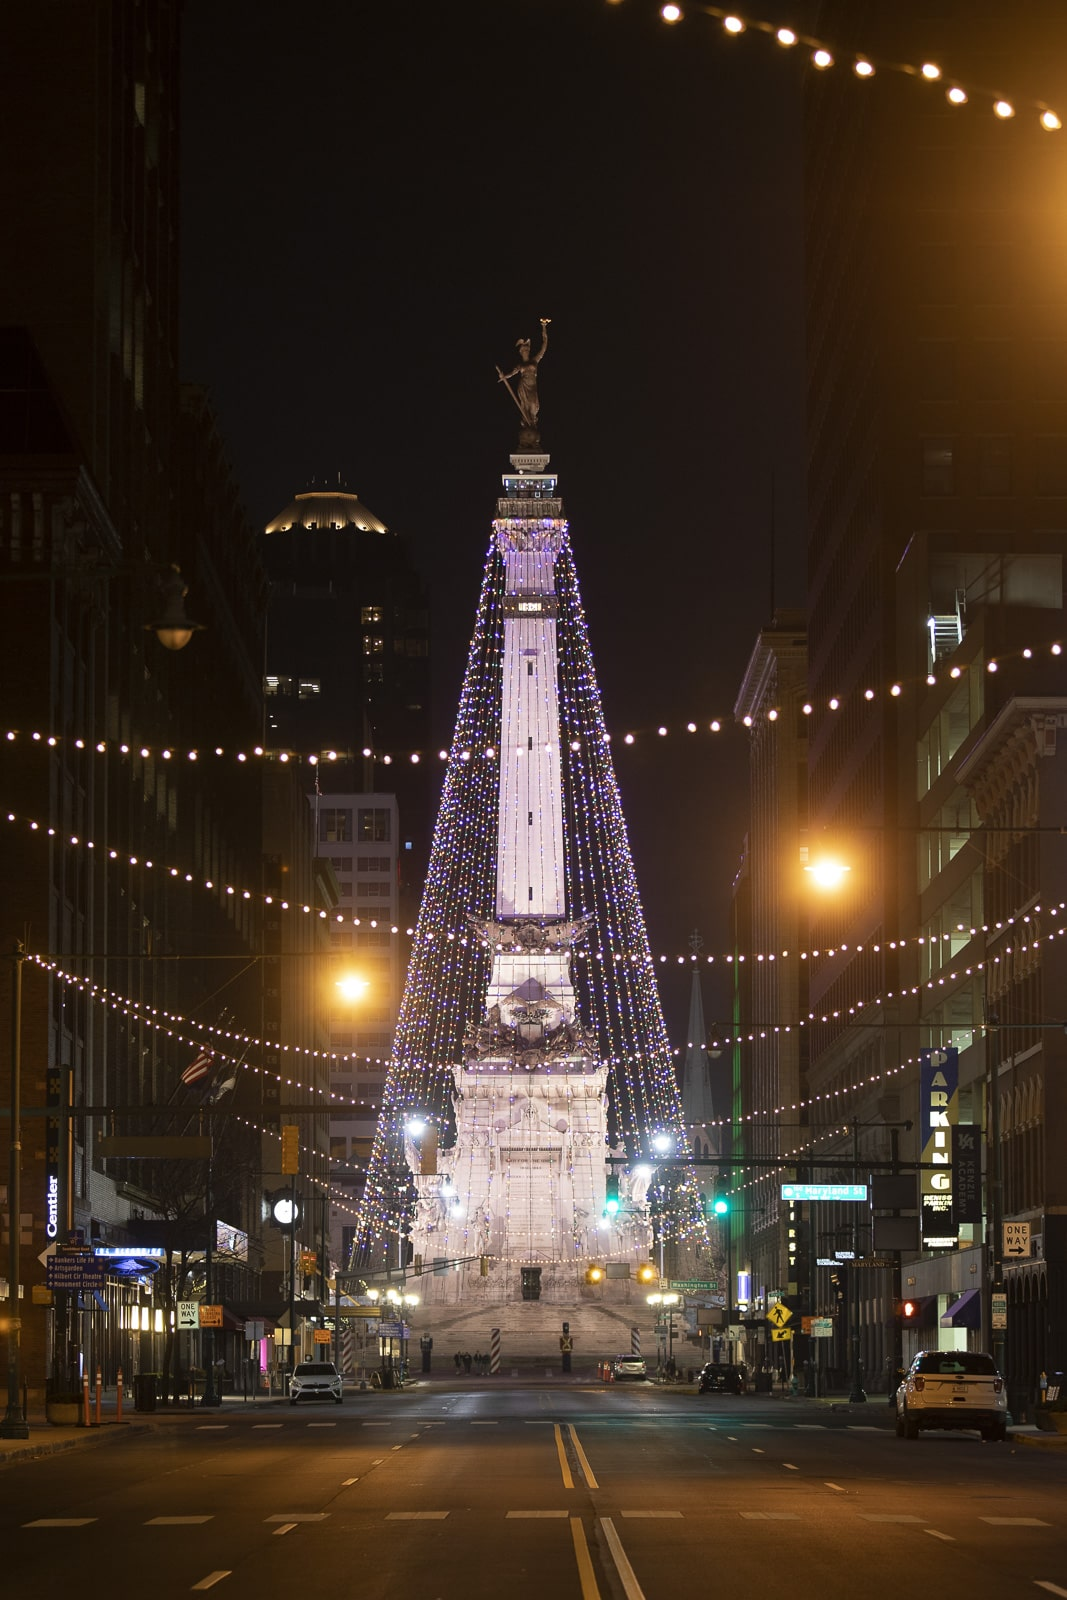 The World's Largest Christmas Tree in Indianapolis at Night